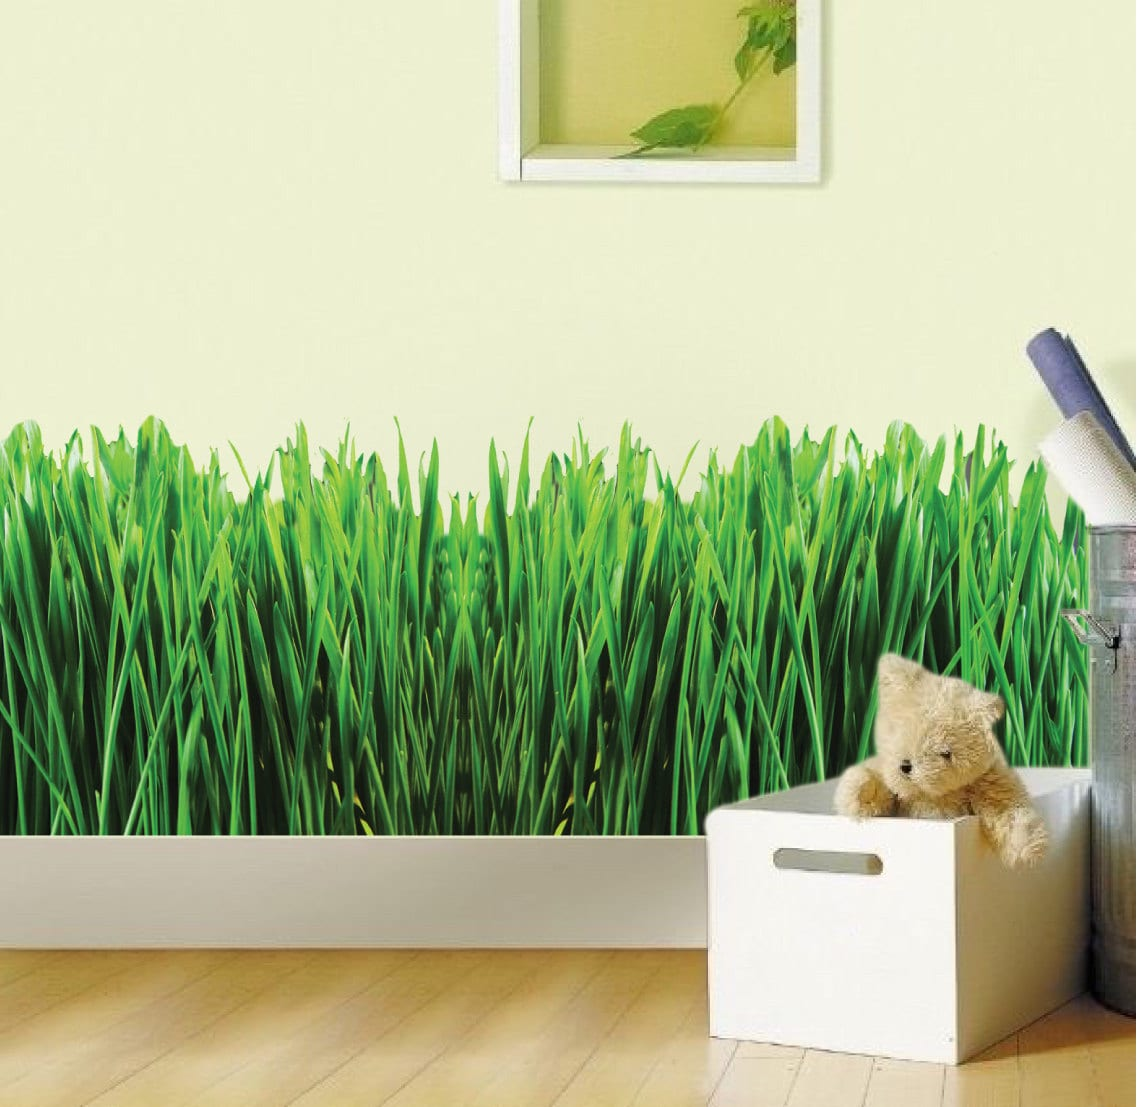 Grass room decal nursery wallpaper decal green grass wall zoom amipublicfo Images